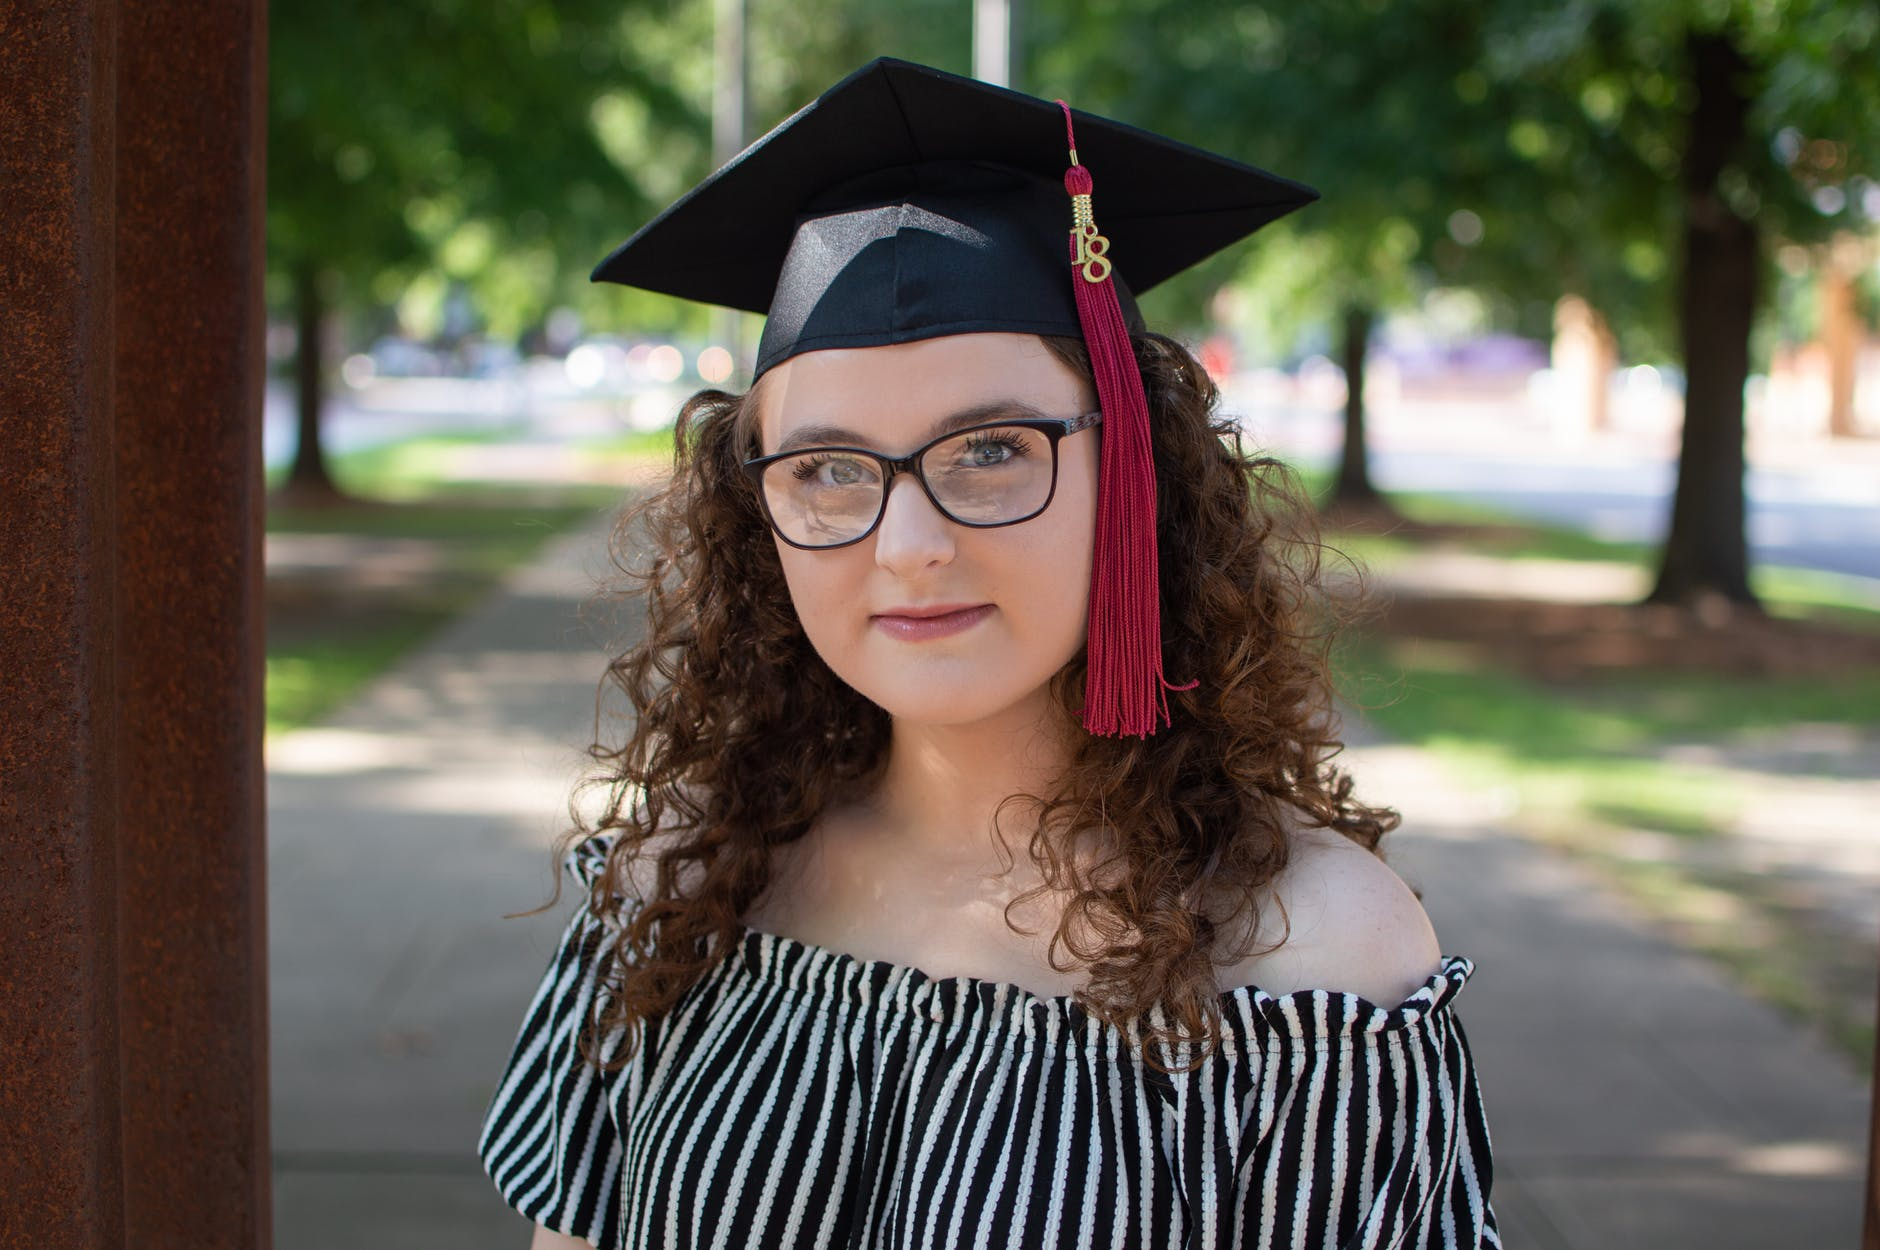 photo of woman wearing square academic cap